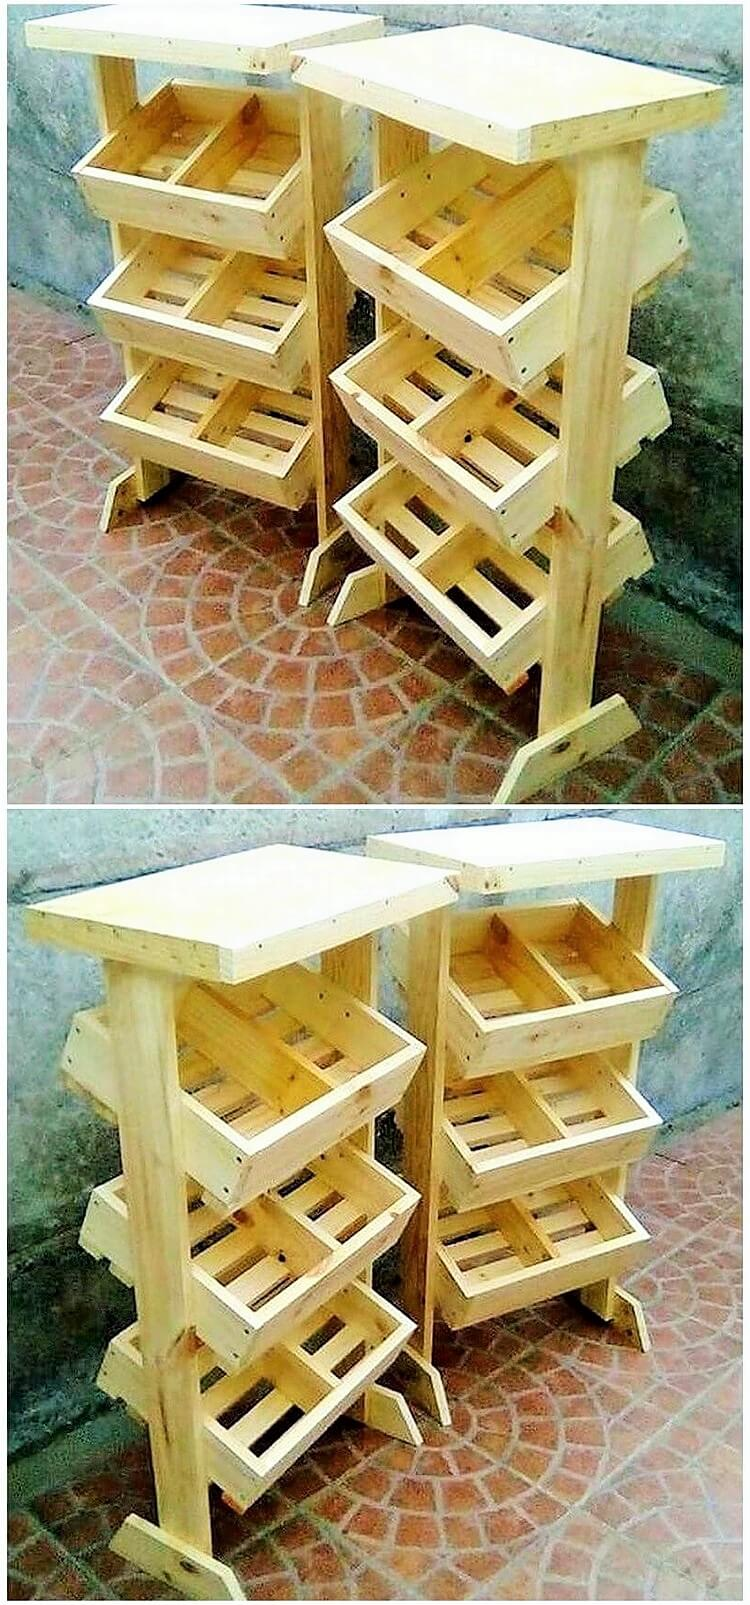 DIY-Wooden Pallets ideas (2)